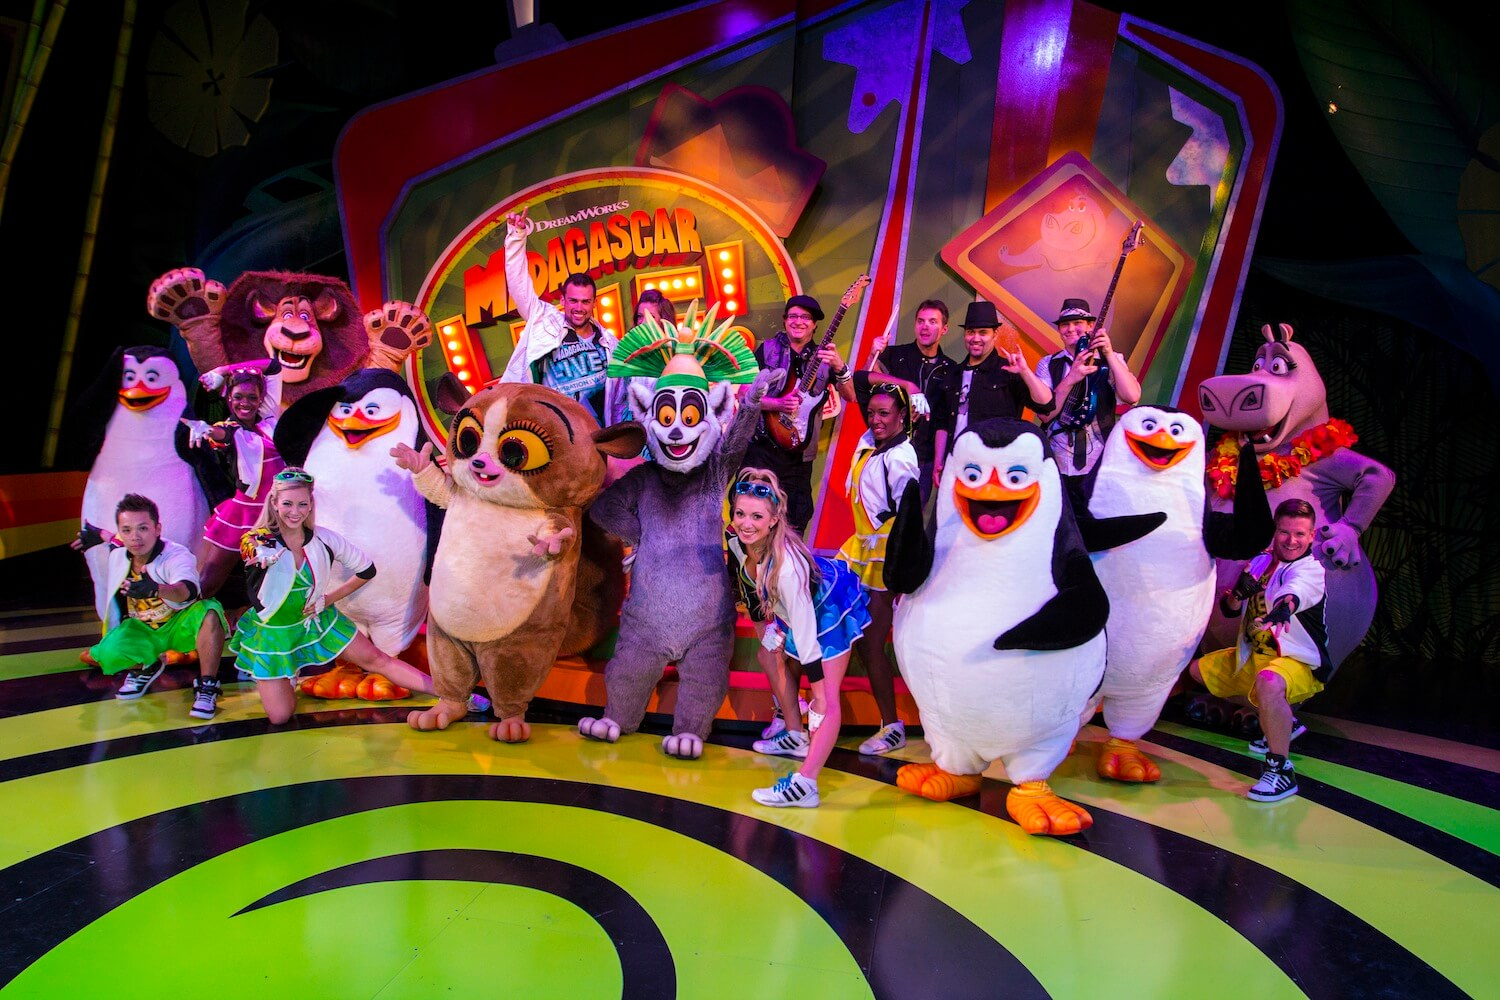 39 Madagascar Live Operation Vacation 39 Musical Stage Show Debuts At Busch Gardens Tampa With